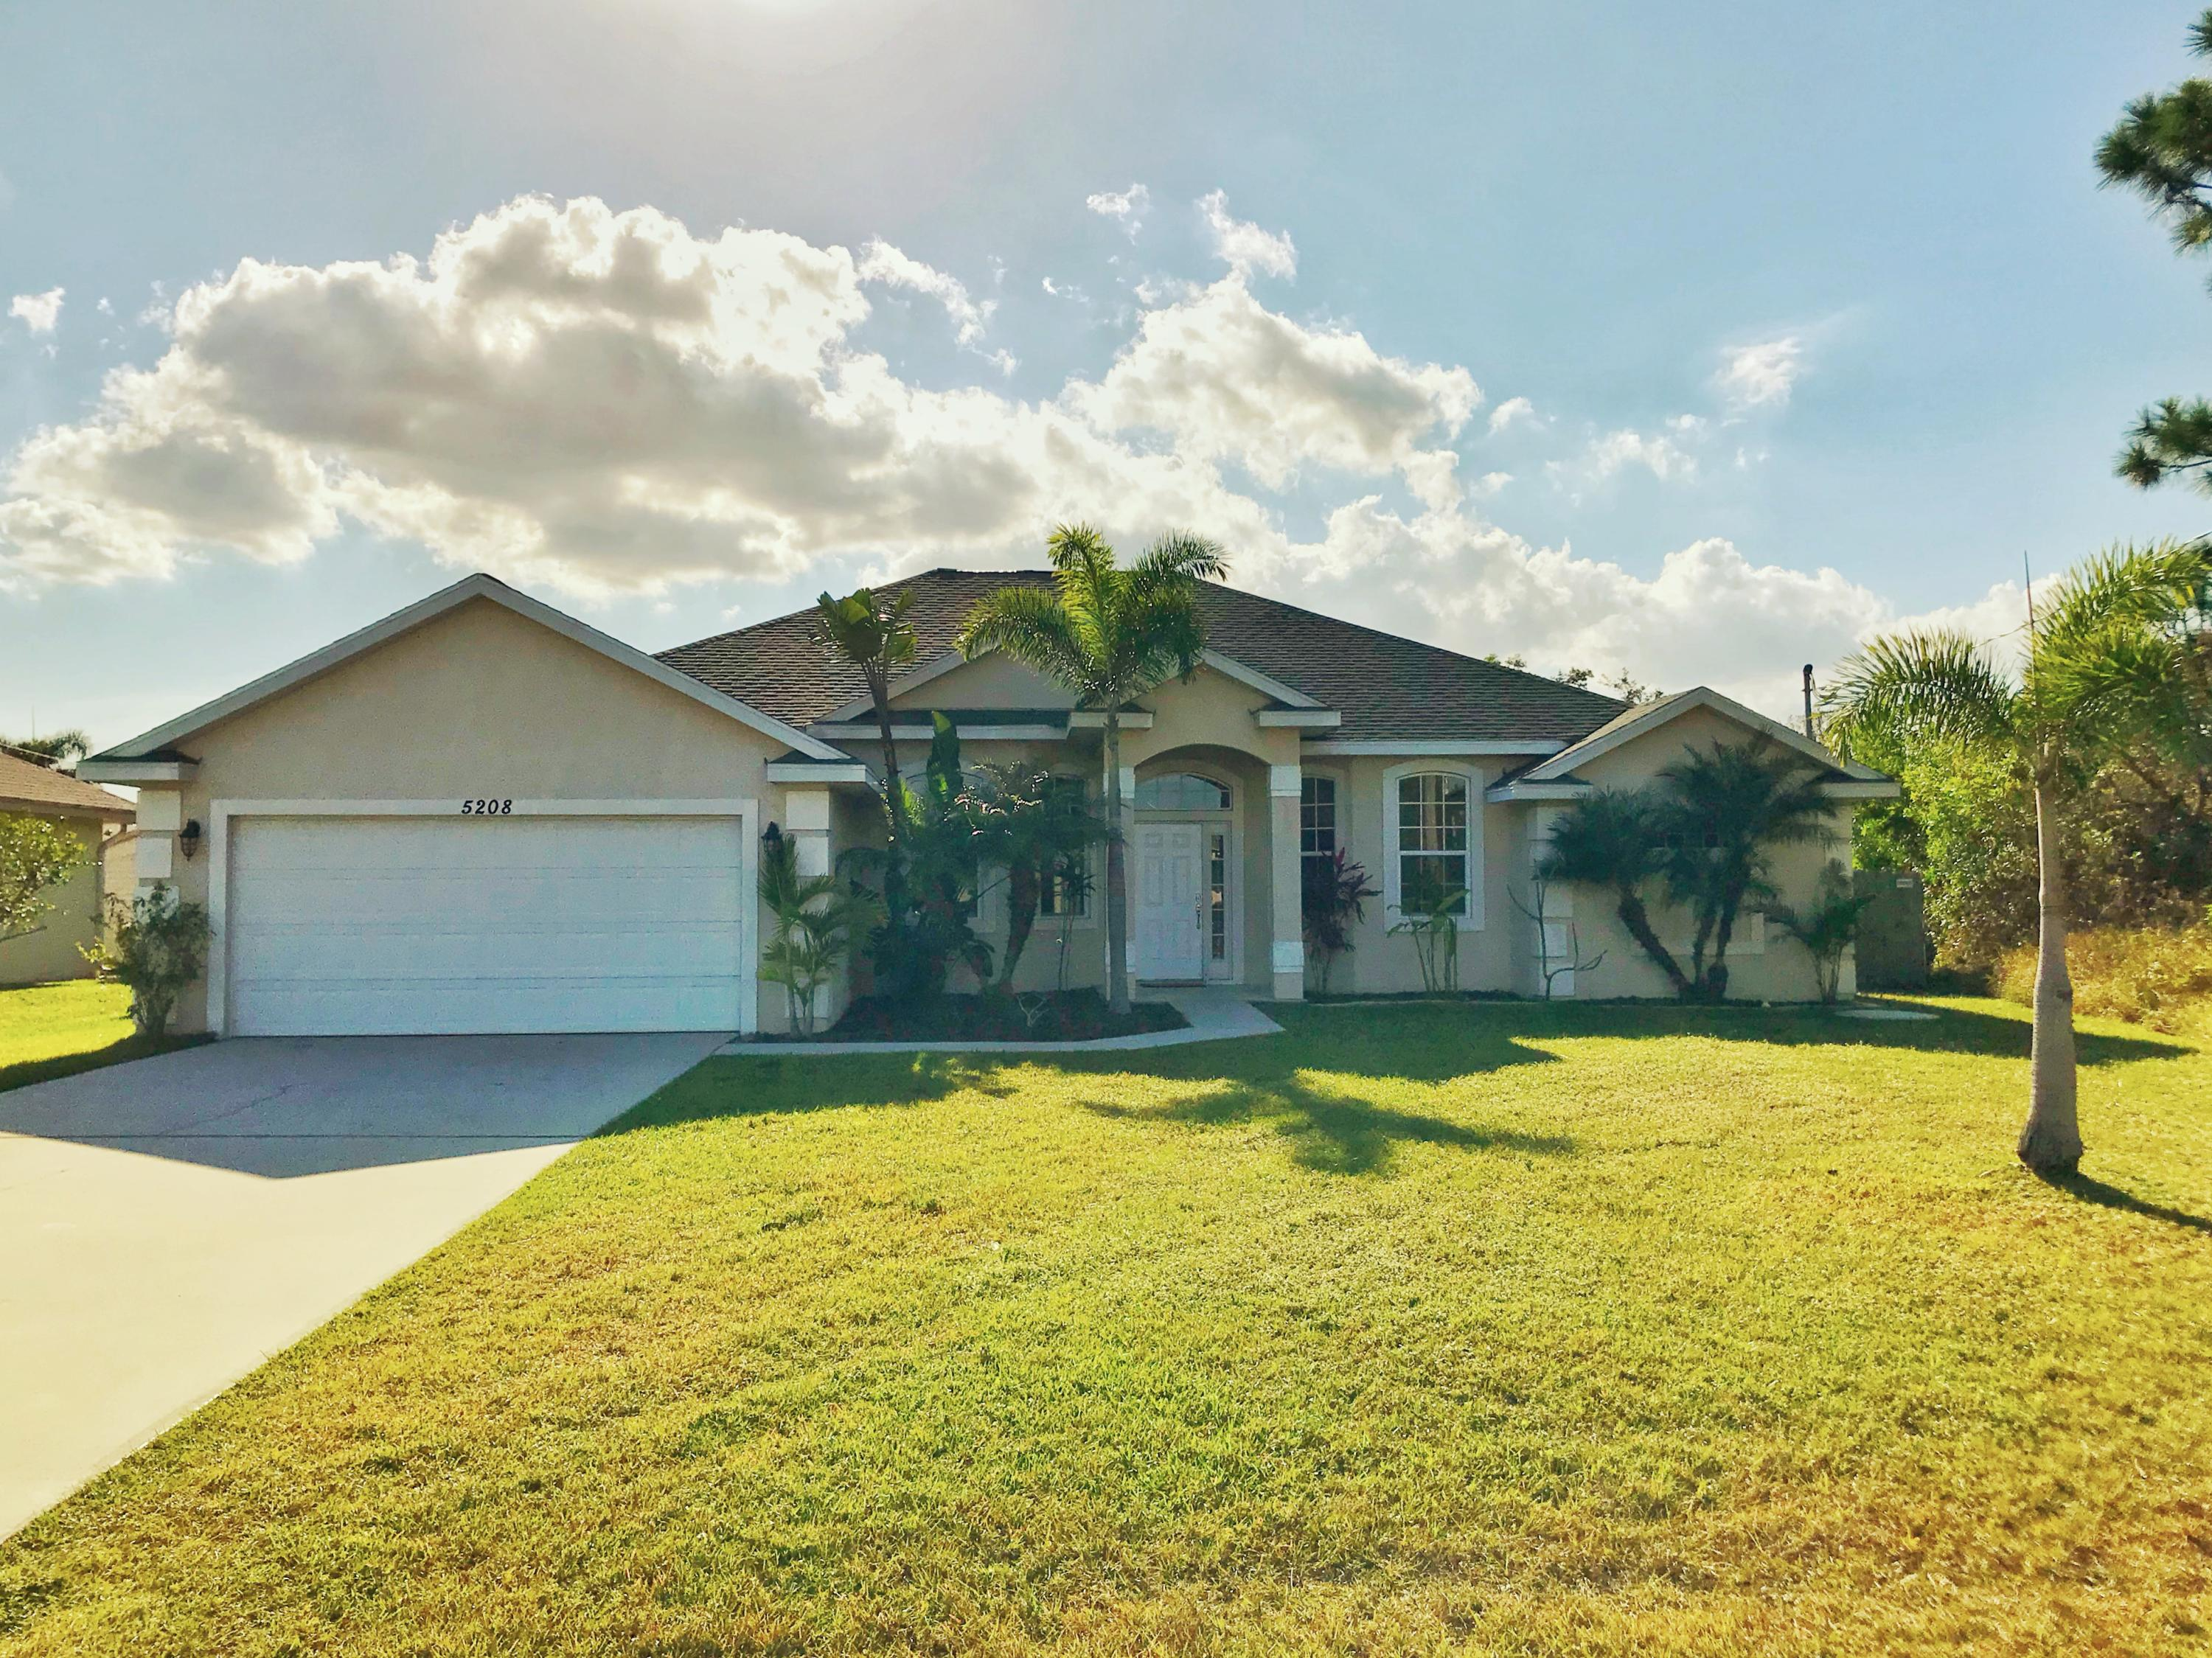 5208 Nw Lovoy S Circle, Port Saint Lucie, FL 34986